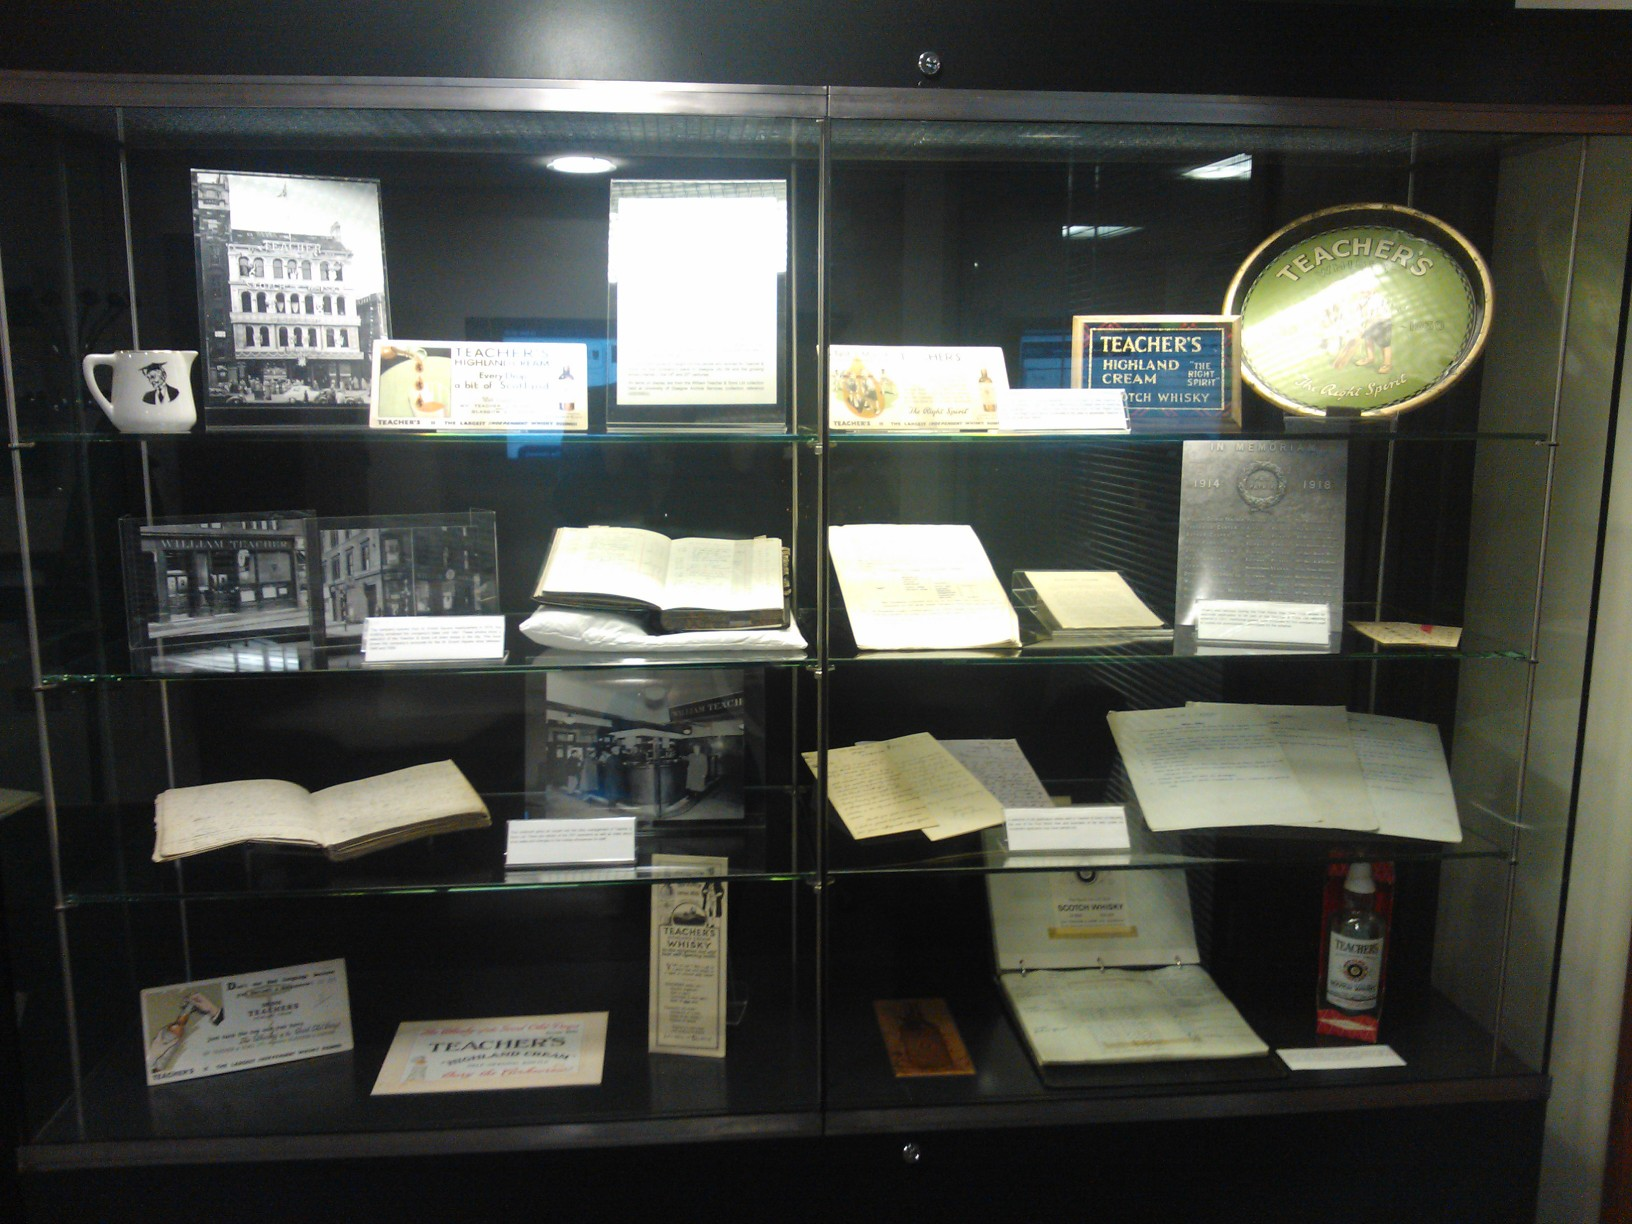 Exhibition Displays Glasgow : Glasgow s 'right spirit teacher sons ltd exhibition